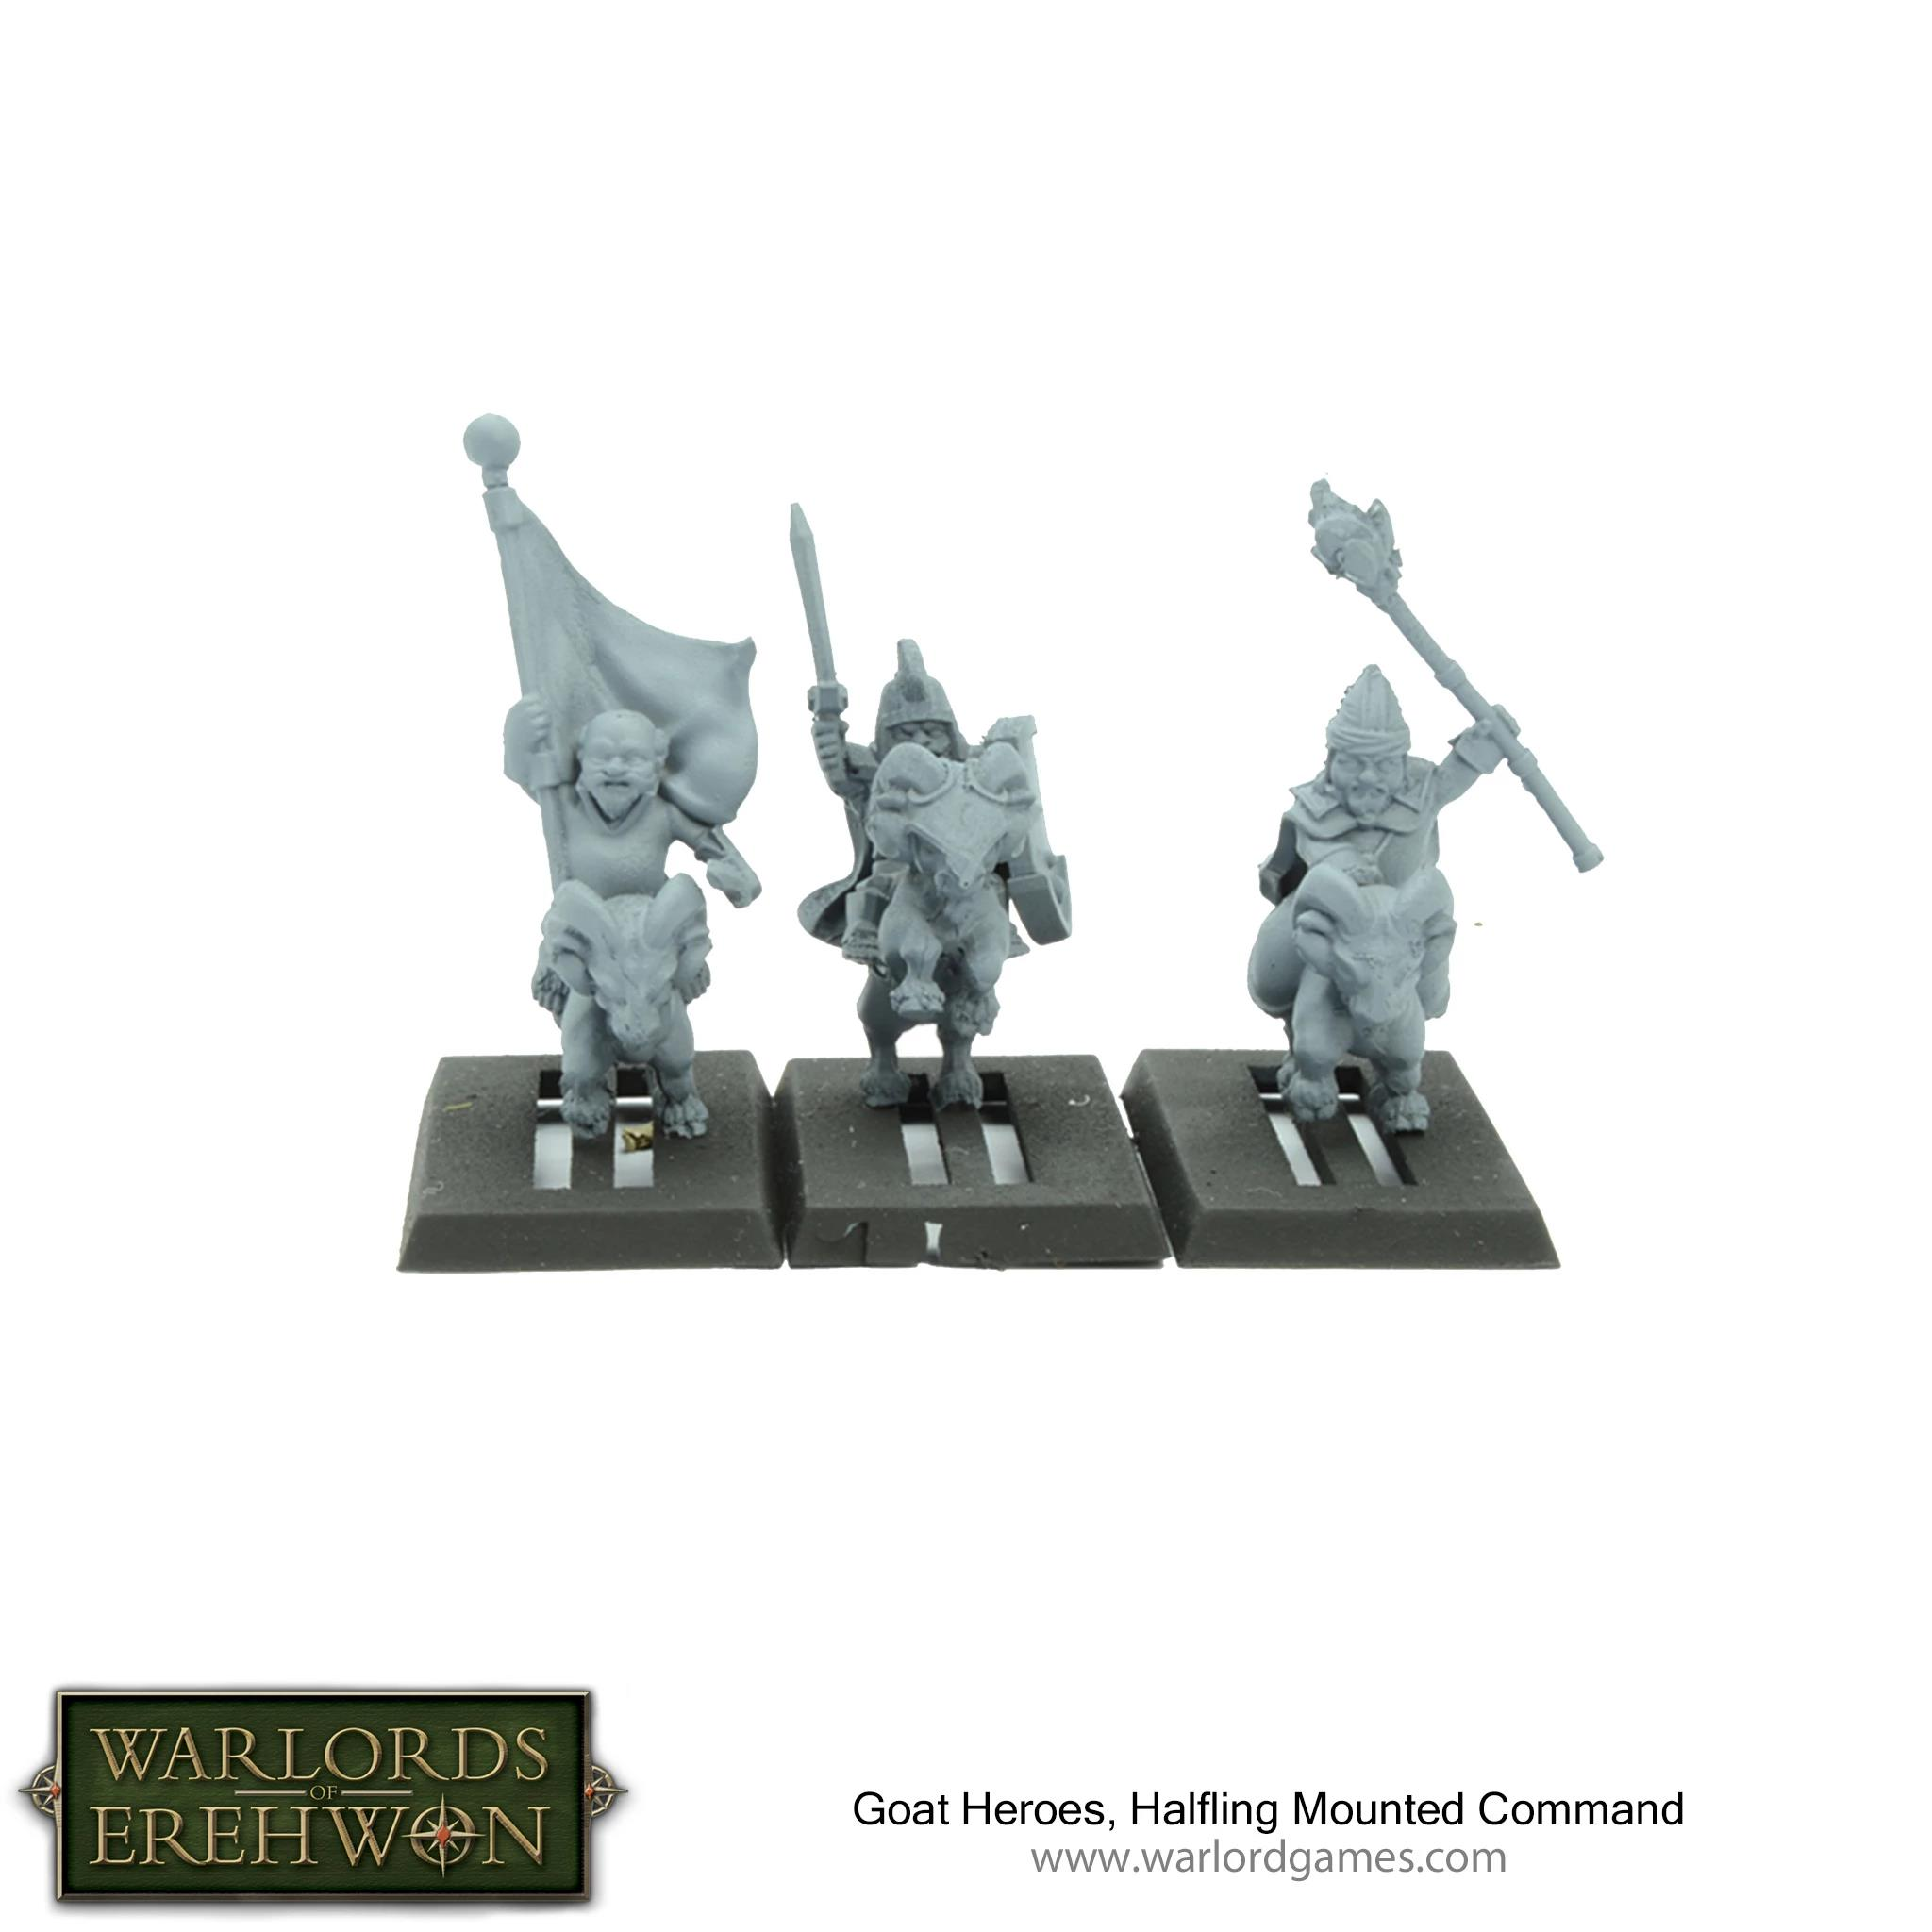 Halfling Goat Heroes, Mounted Command